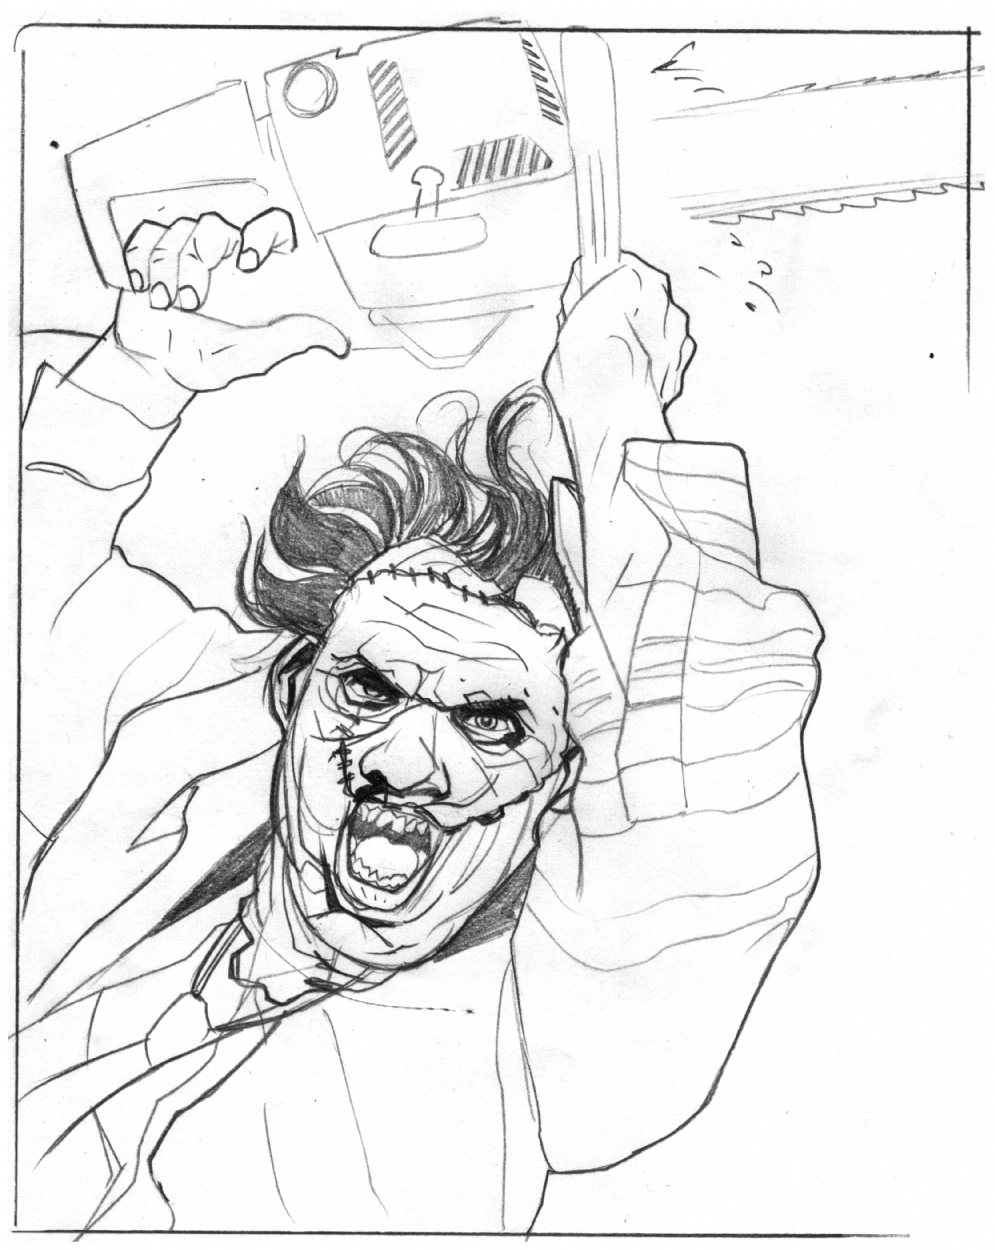 leatherface sketch  in tom feister u0026 39 s sketches comic art